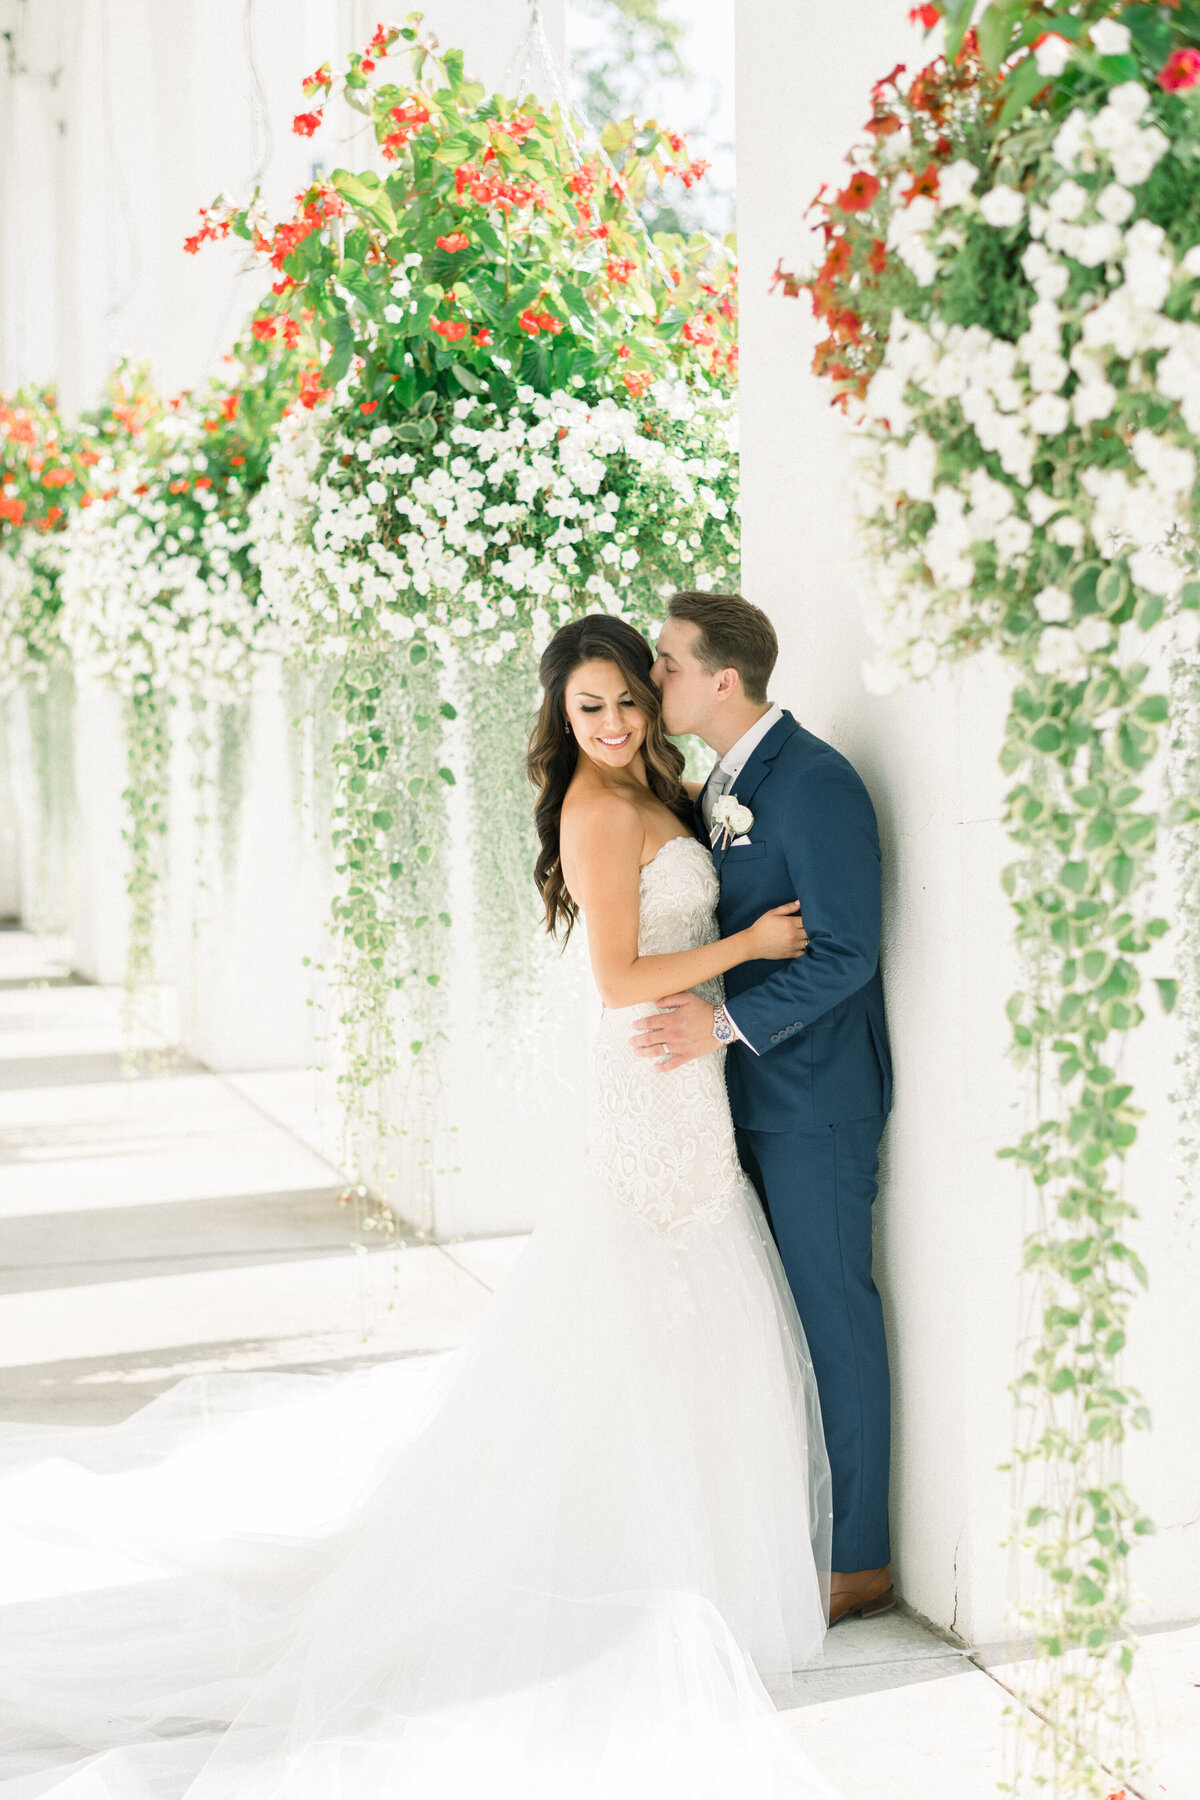 Trish Allison Photography, Minneapolis wedding photographer, MN wedding photographer, luxury wedding photographer, film wedding photographer MN, Lafayette Club Wedding Photos, Minnesota wedding photographer